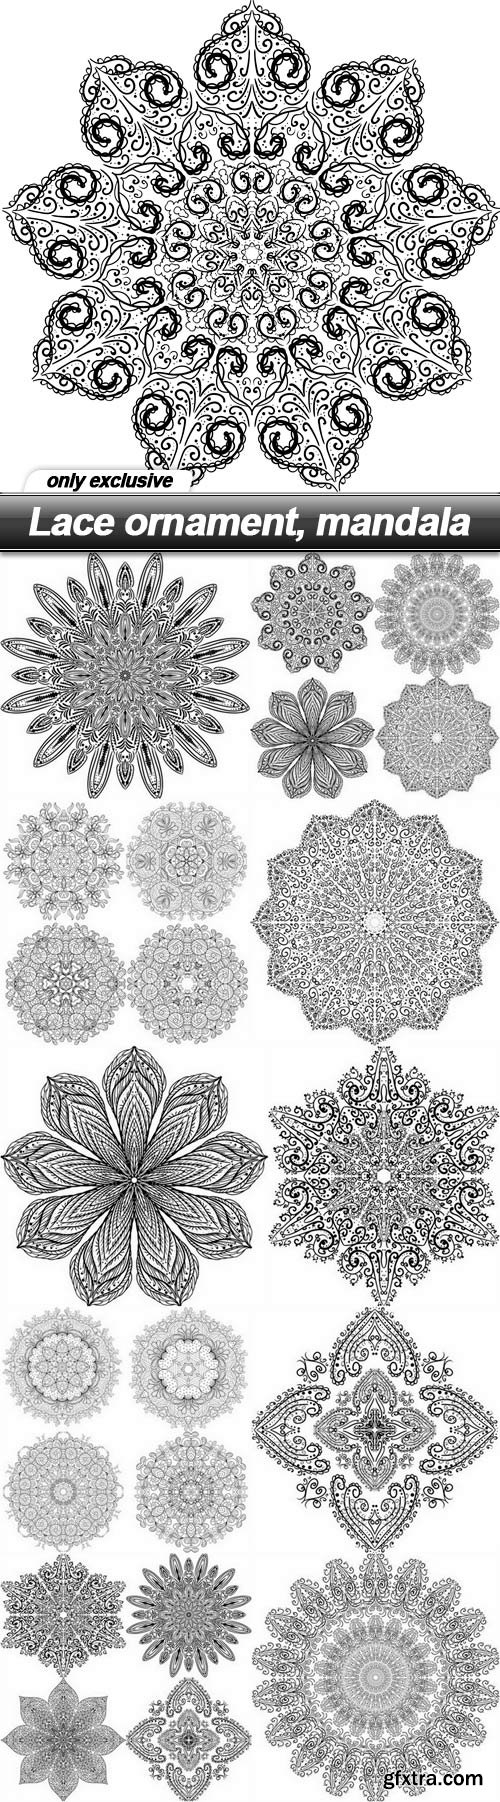 Lace ornament, mandala - 11 EPS